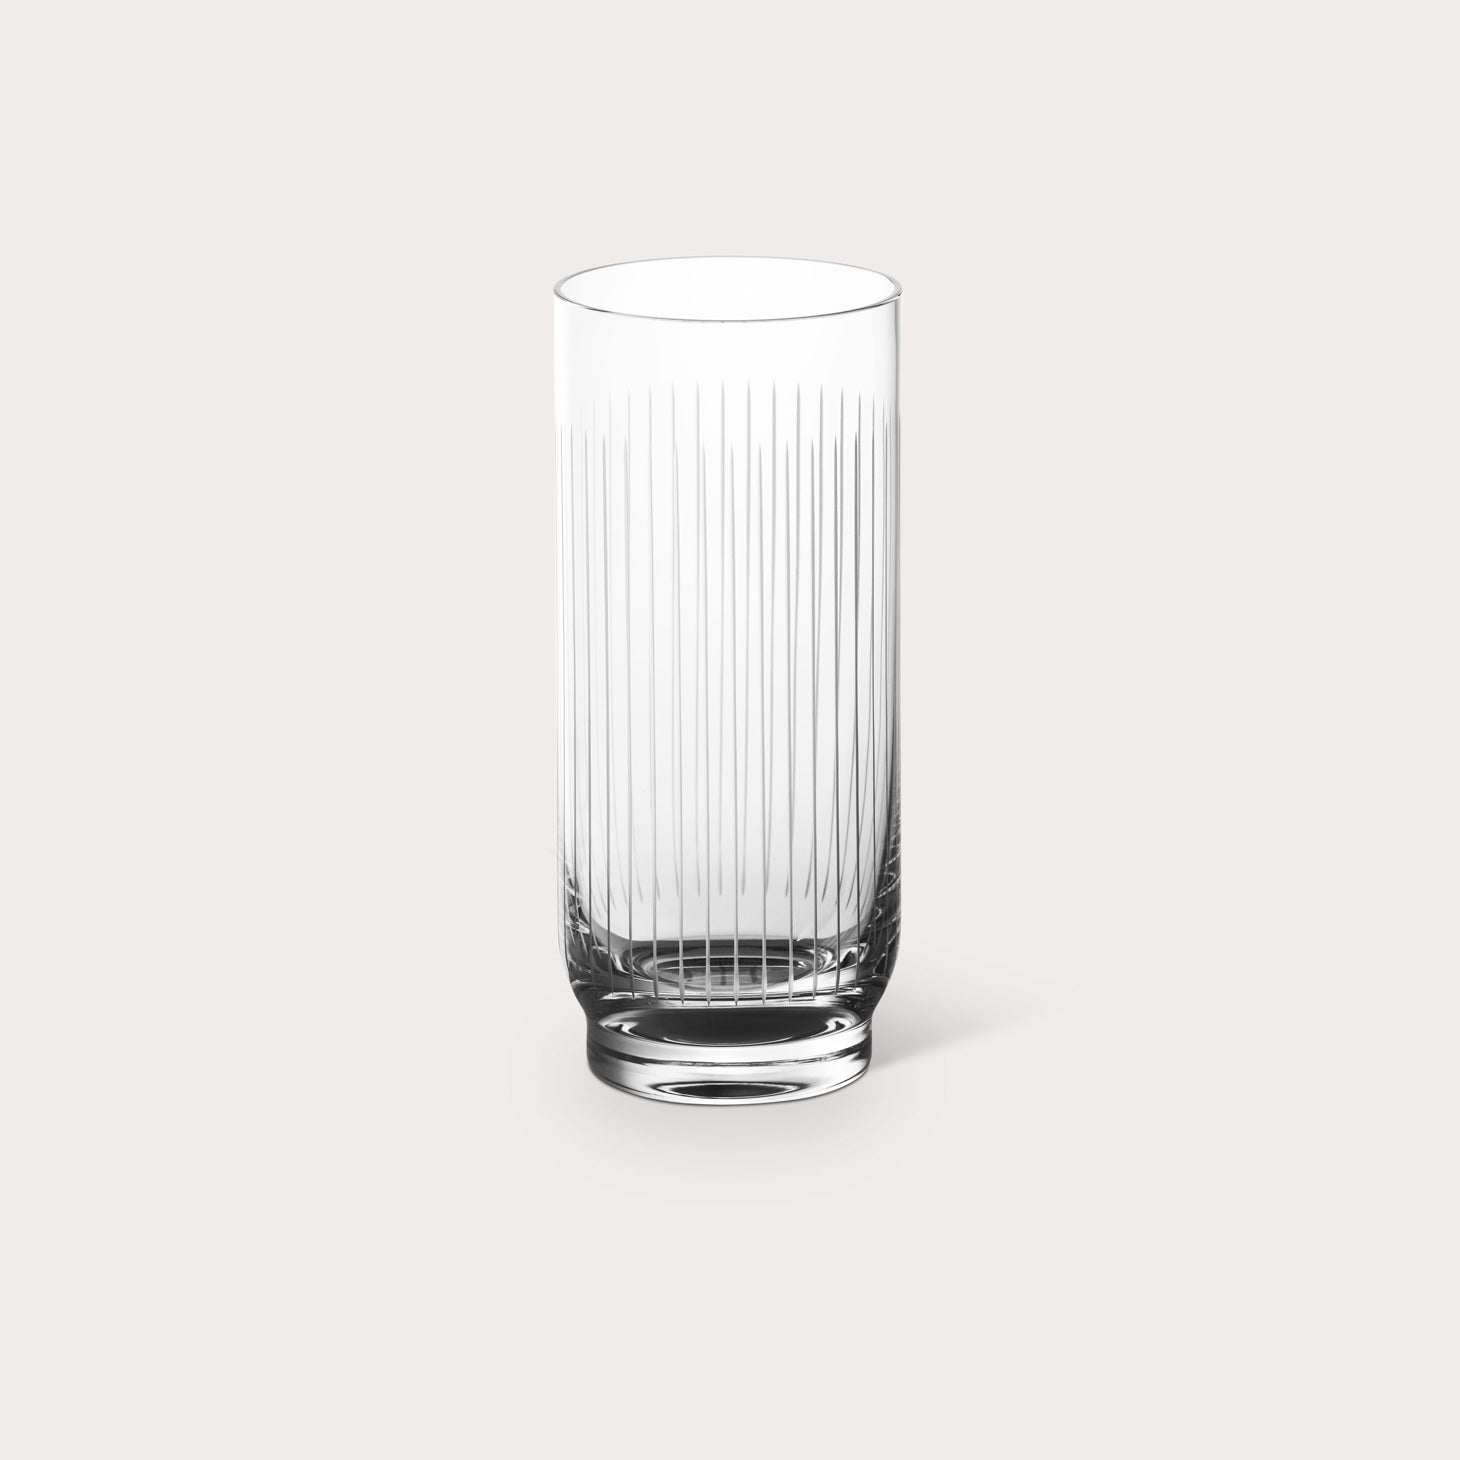 Otto Highball Glass Set of 2 Accessories Yabu Pushelberg Designer Furniture Sku: 110-100-10003